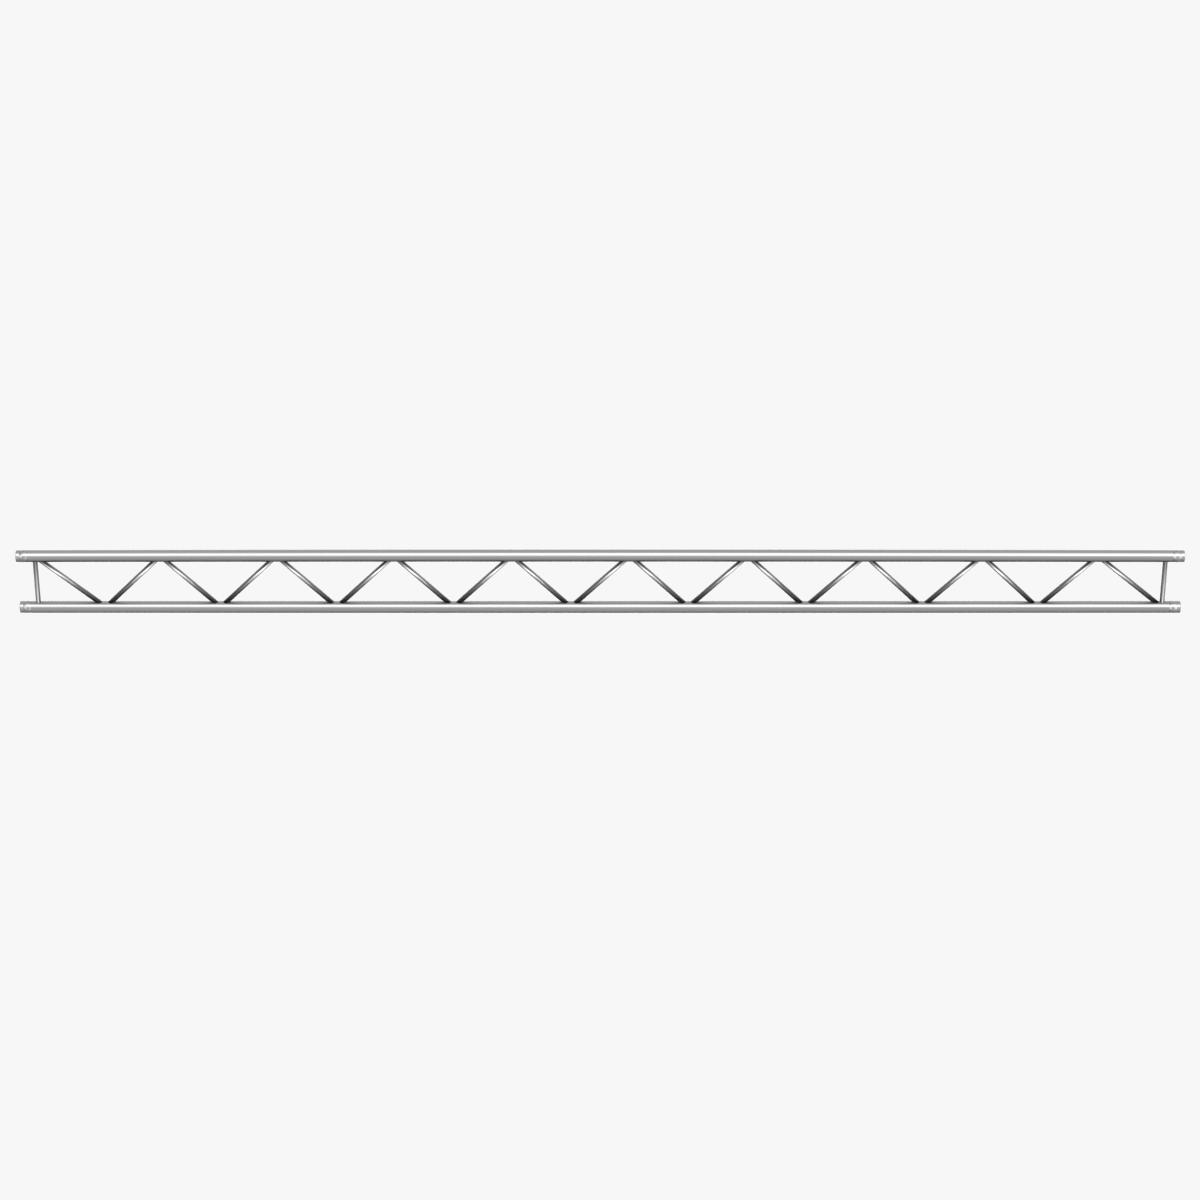 beam trusses (collection 24 modular pieces) 3d model 3ds max dxf fbx bmp blend c4d dae other obj 268738